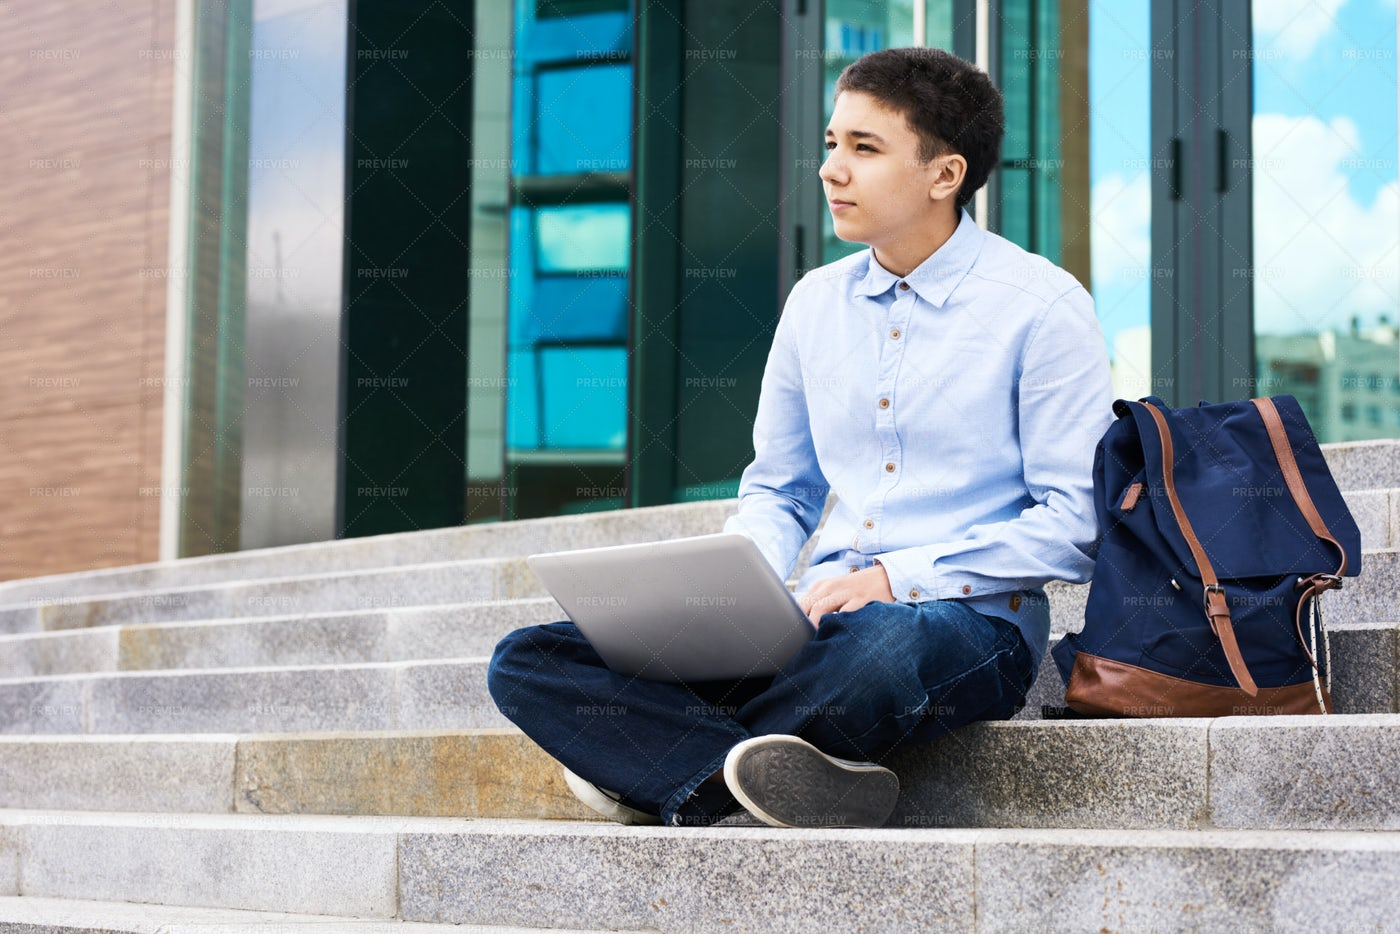 Pensive Schoolboy With Laptop...: Stock Photos